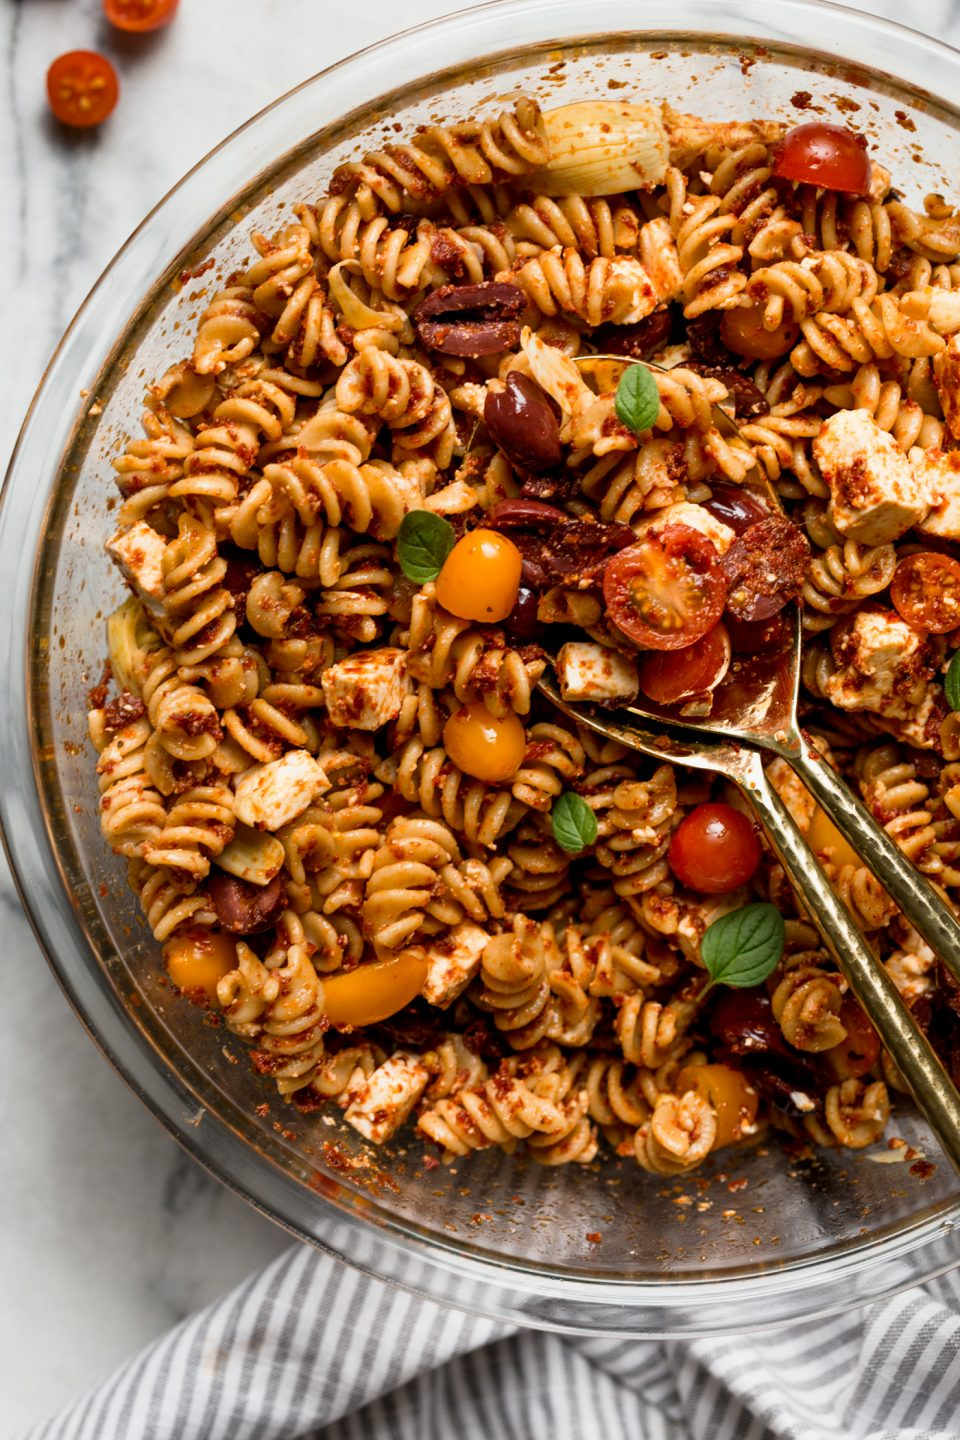 sundried tomato pasta salad with fresh tomatoes in a bowl